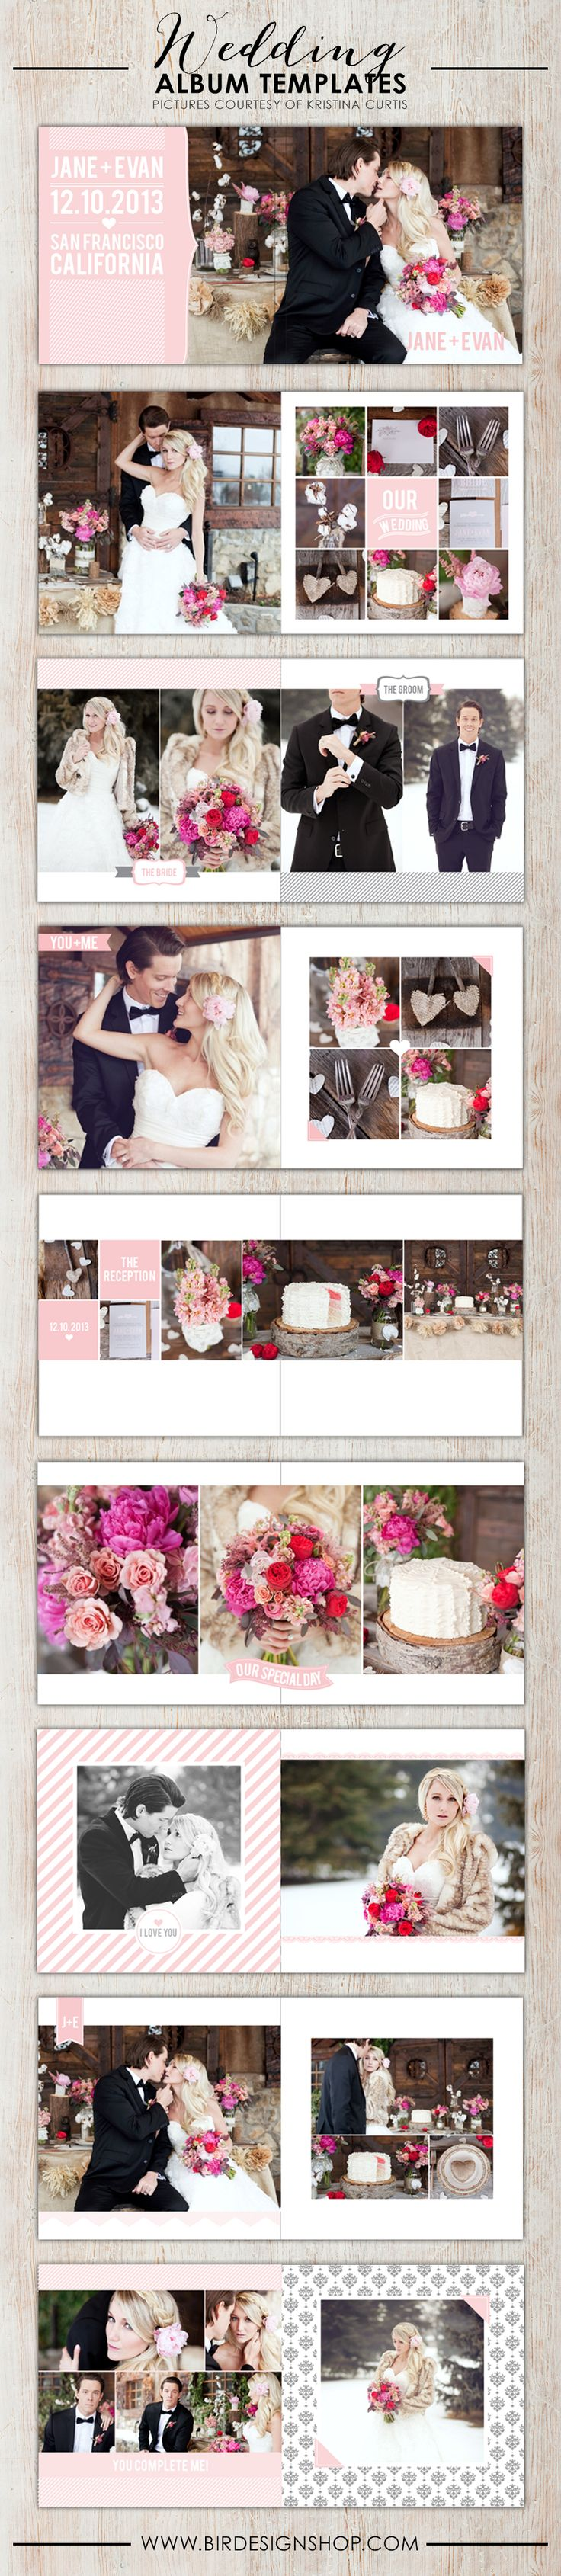 Check out the new wedding album templates! Fresh, romantic and a classic look to show the best shoots of your wedding sessions. Fully customizable layer....